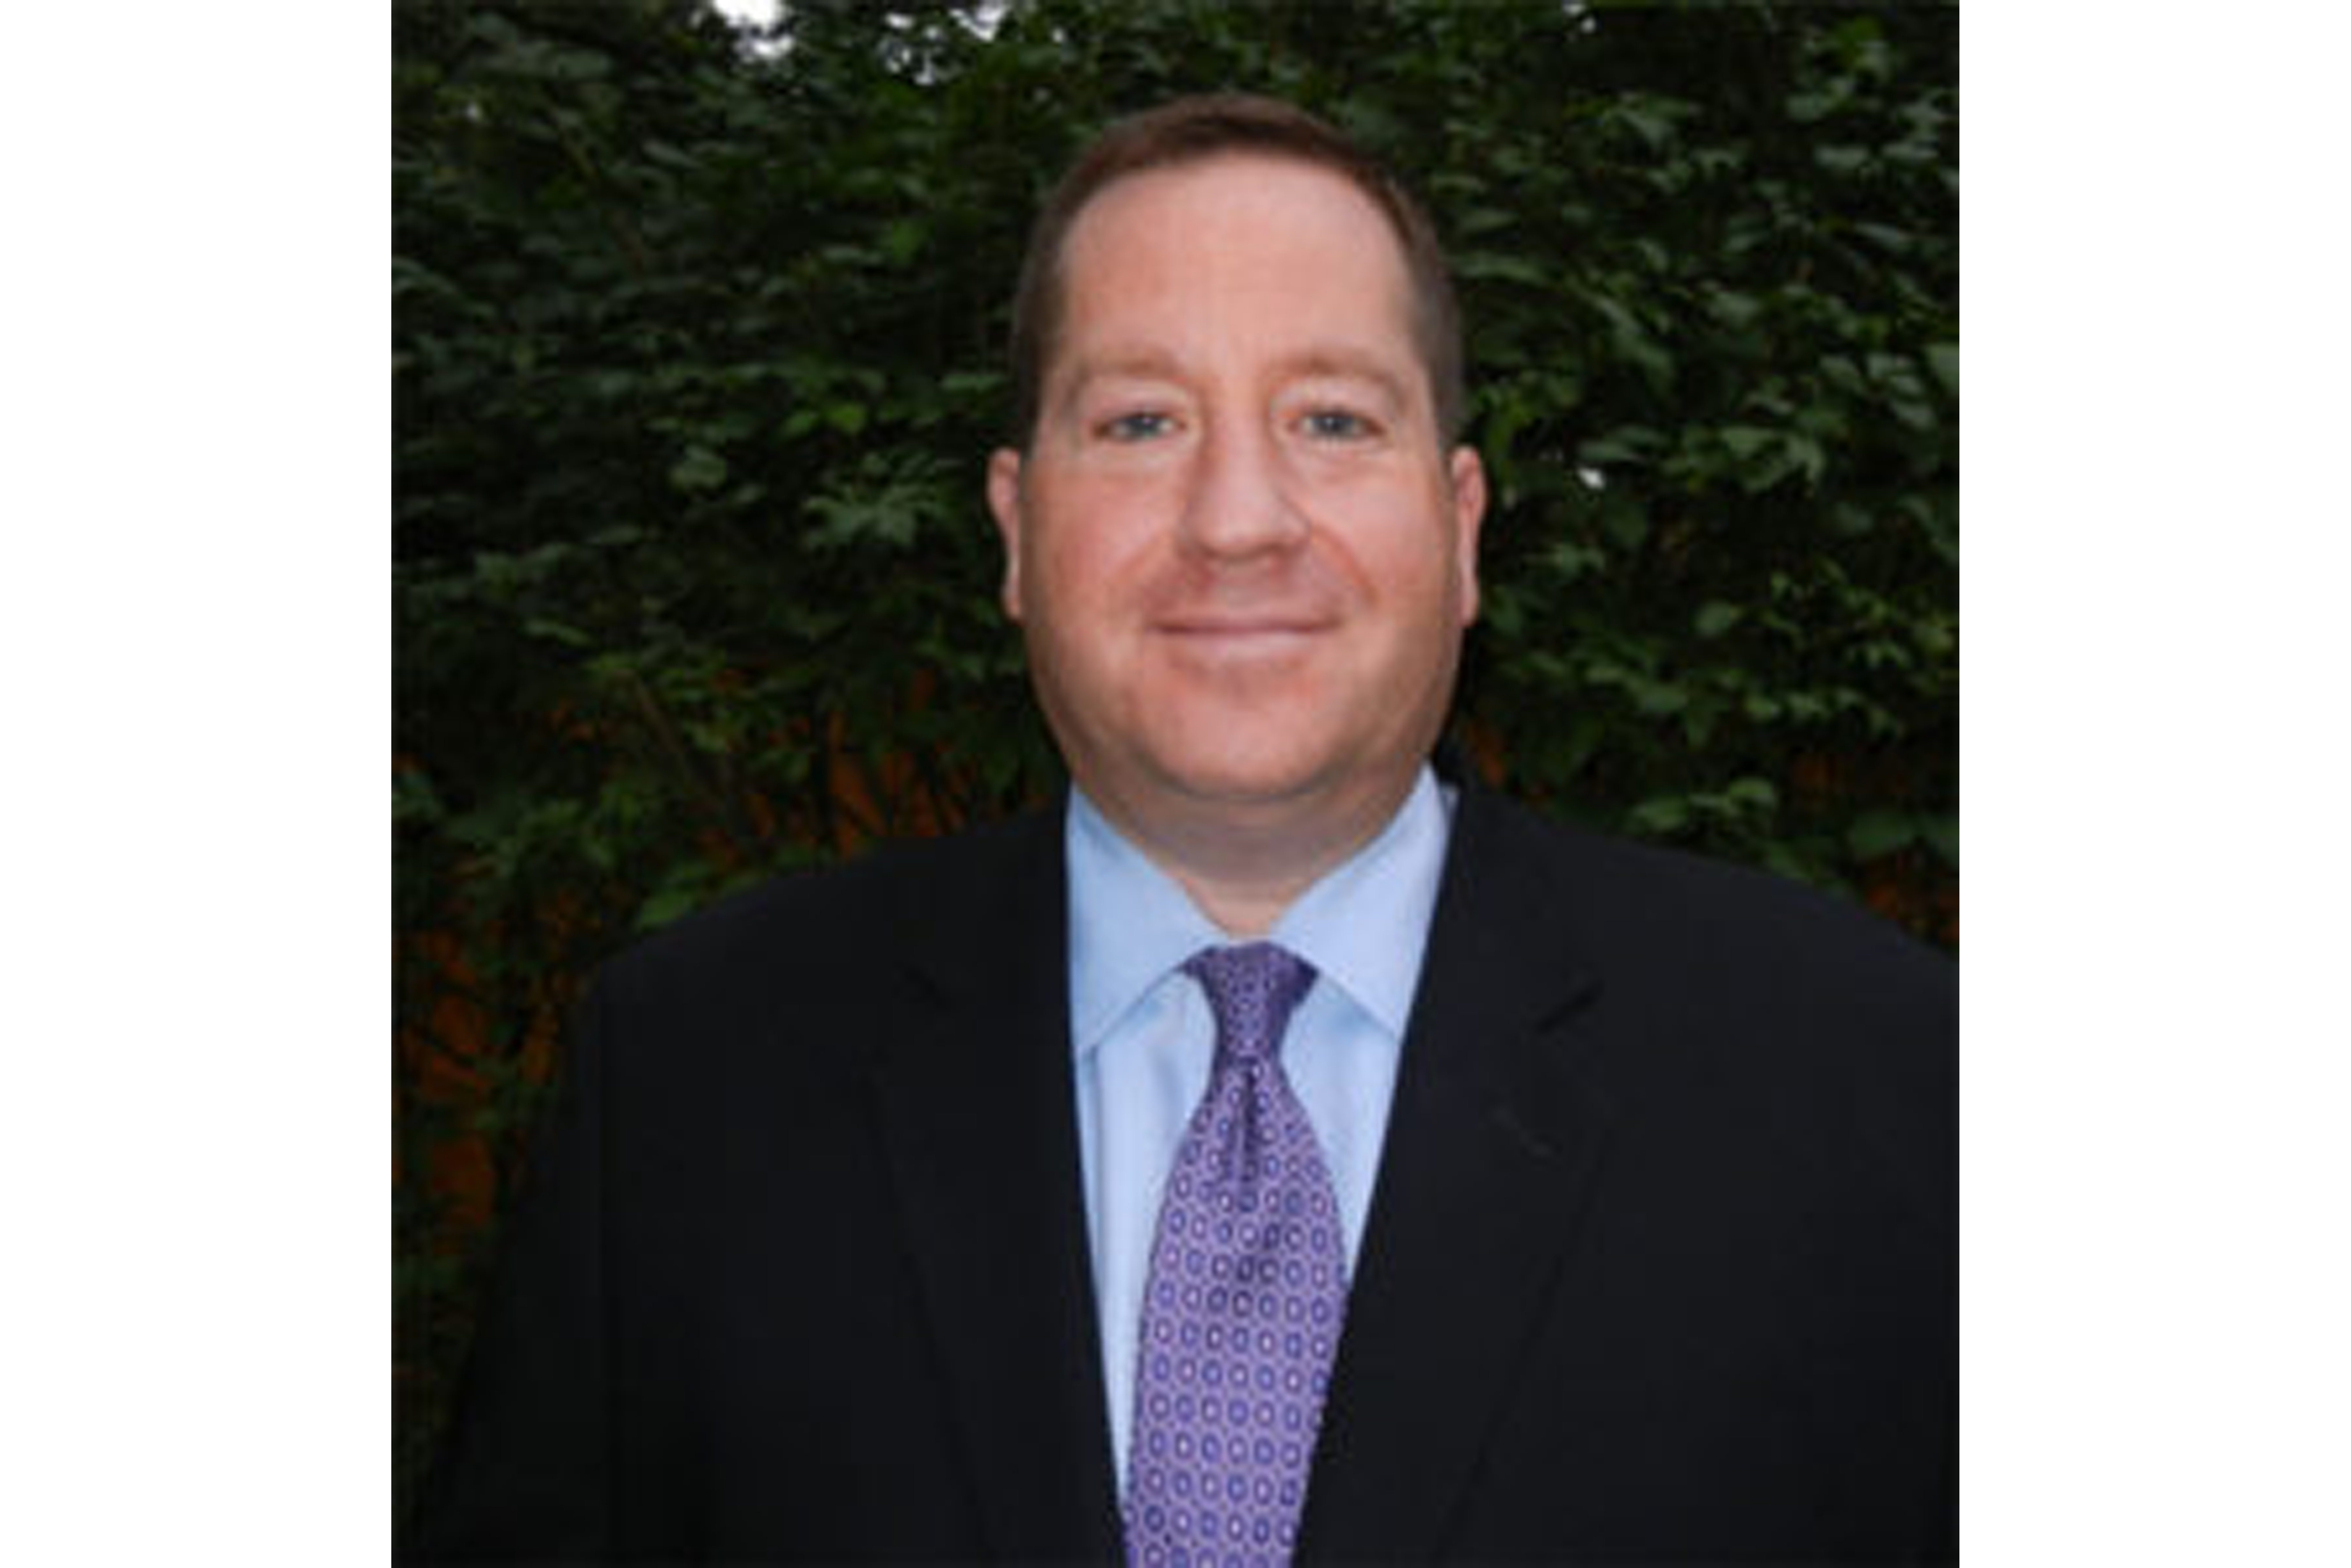 Michael R. Lieber of the Lieber Law Group in Chicago.